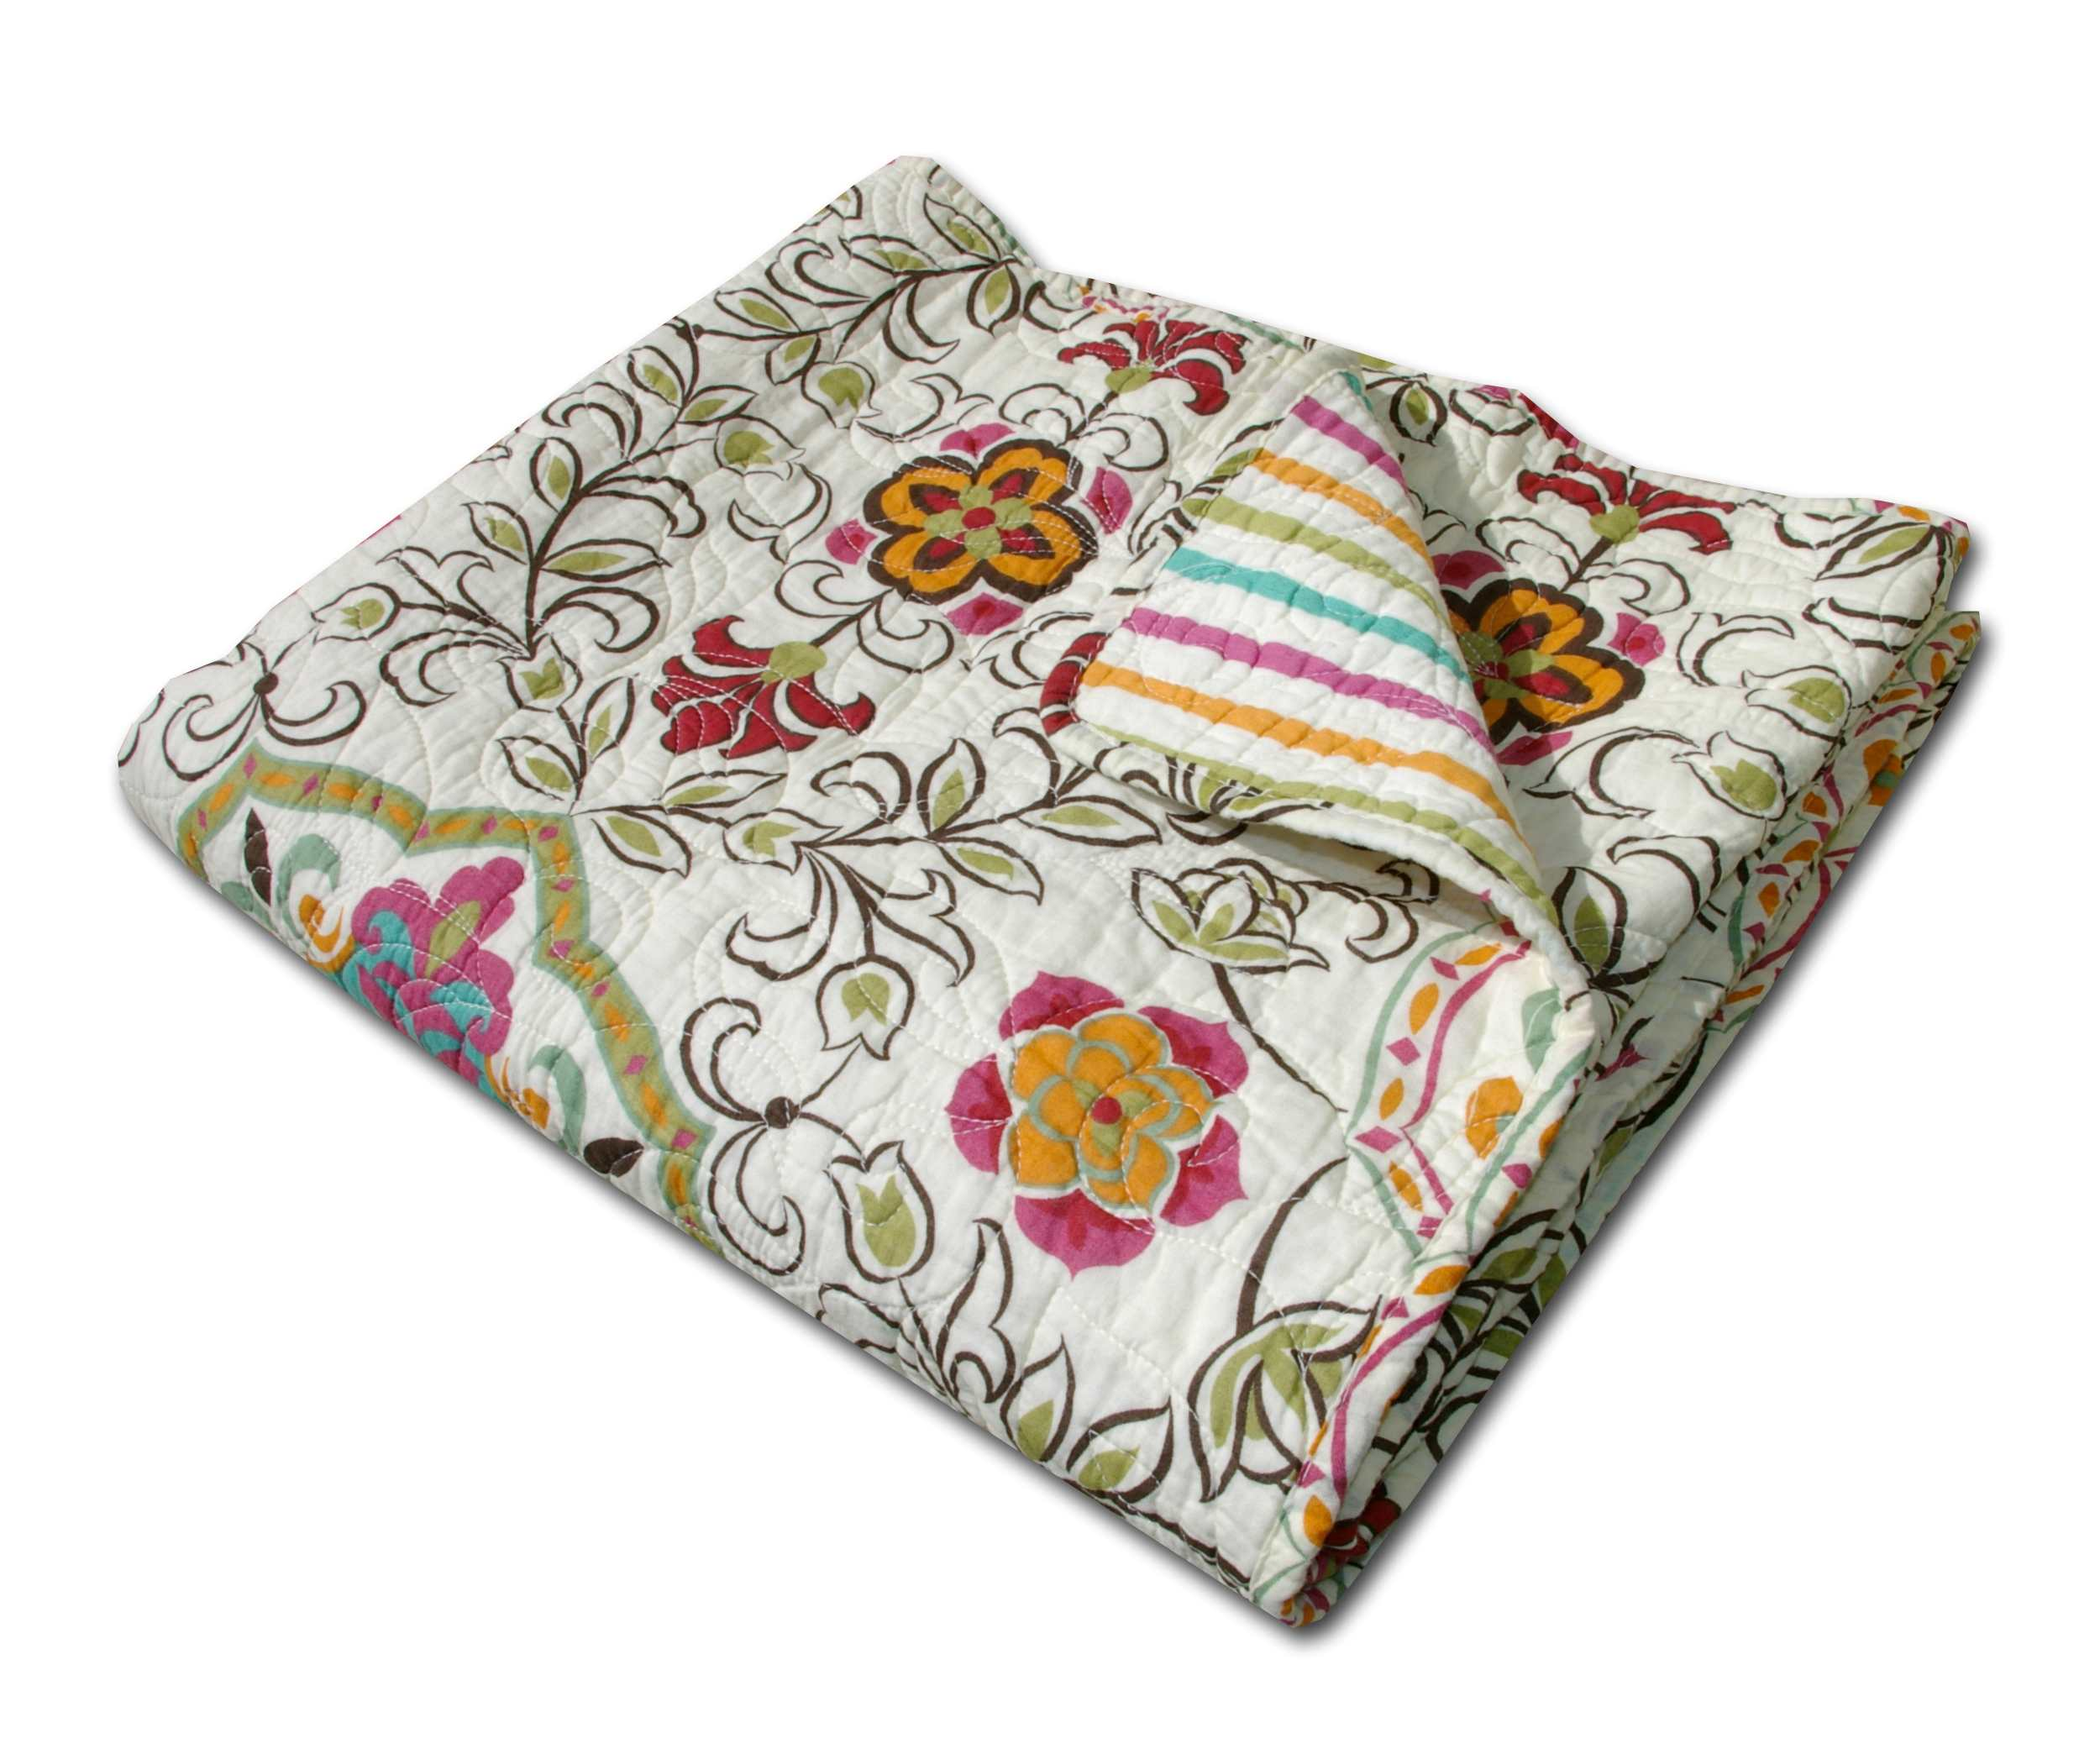 Esprit Spice Accessory Throw